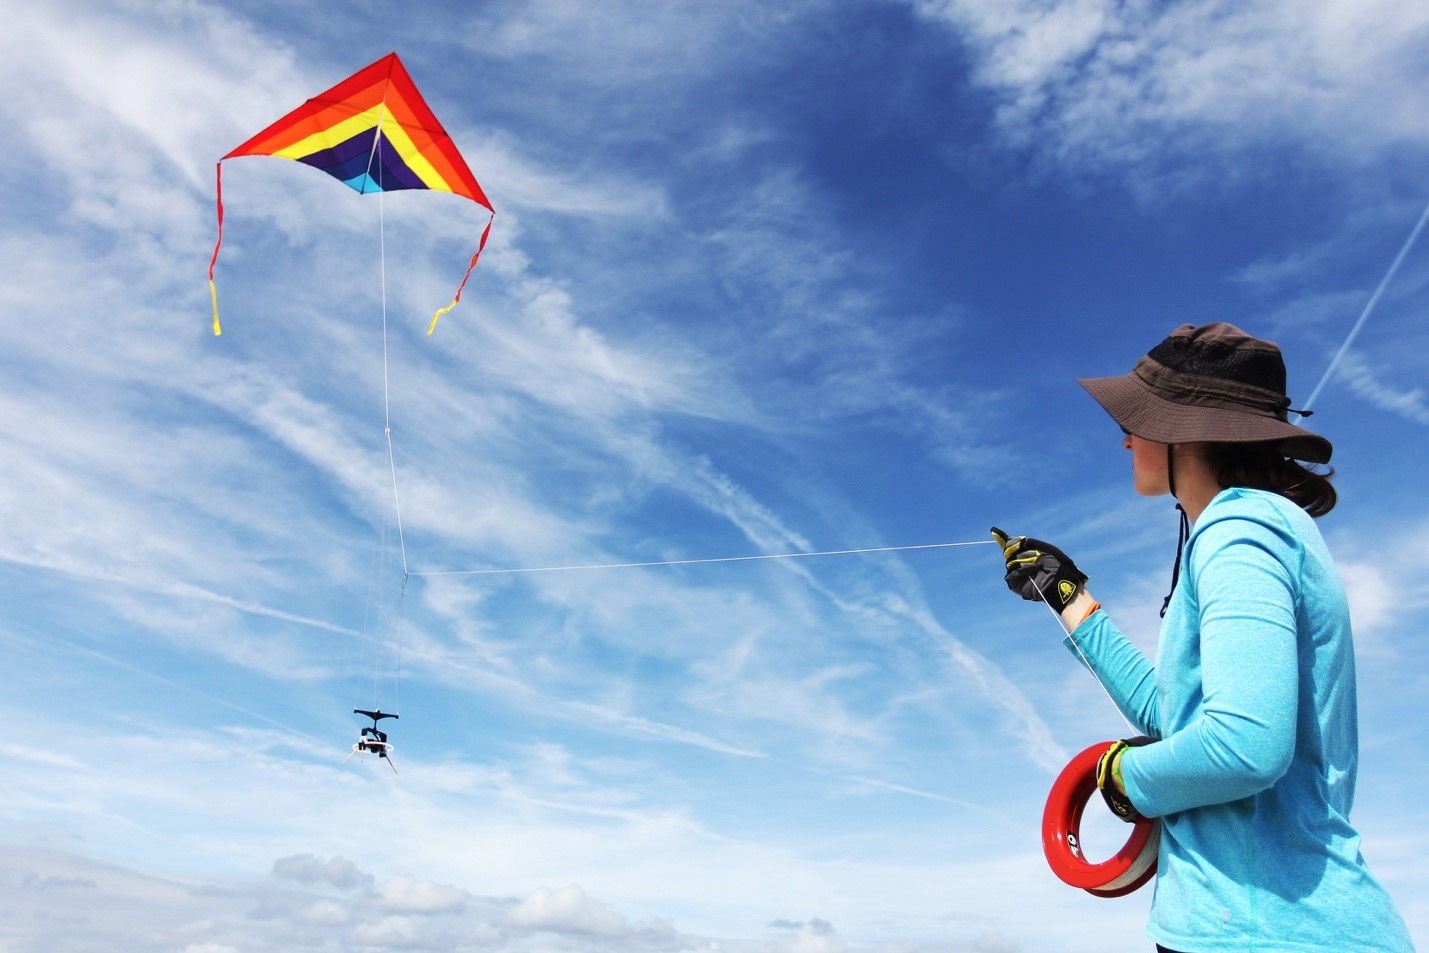 a girl uses a kite to get arial footage of a beach